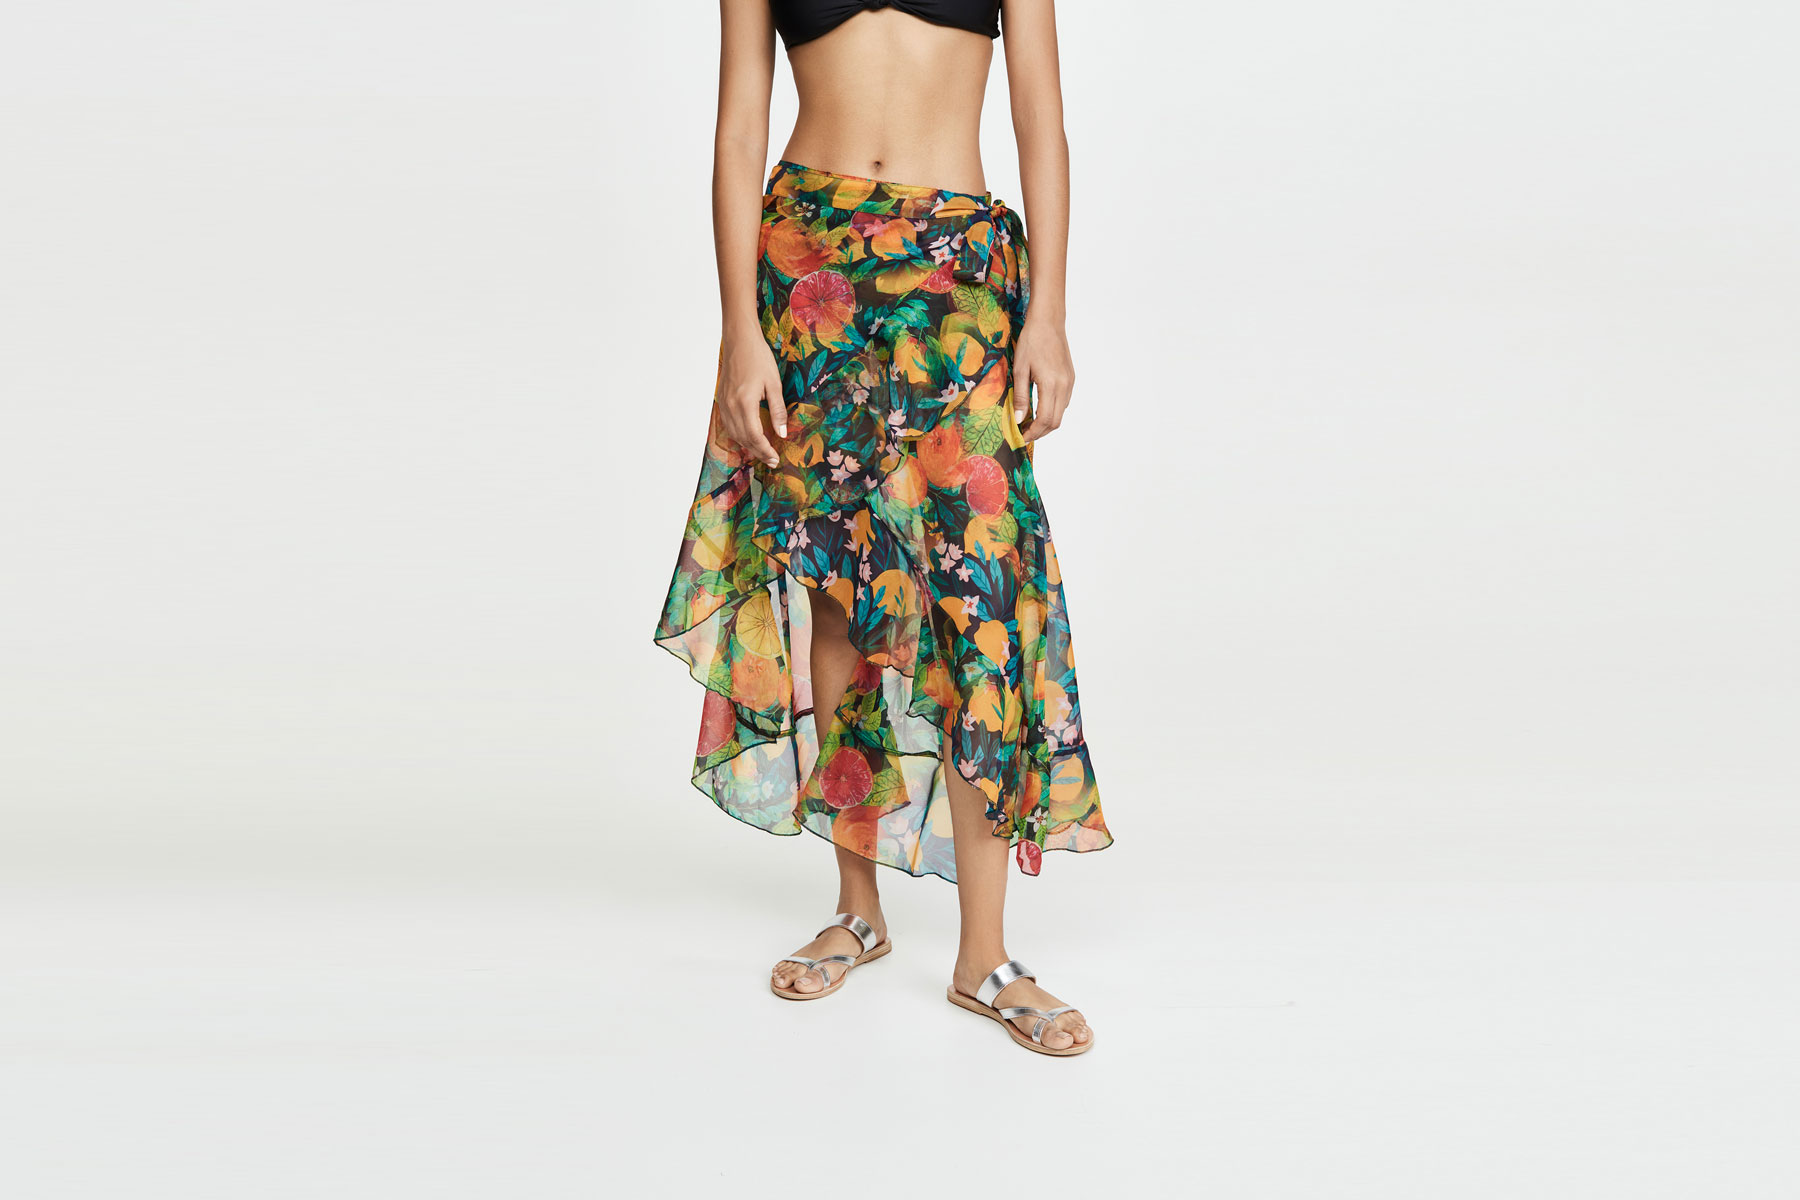 The colorful fruit print and ruffle trim will make this sarong the most fun accessory in your beach bag.To buy: shopbop.com, $95Love a great deal? Sign up for our T+L Recommends newsletter and we'll send you our favorite travel products each week.